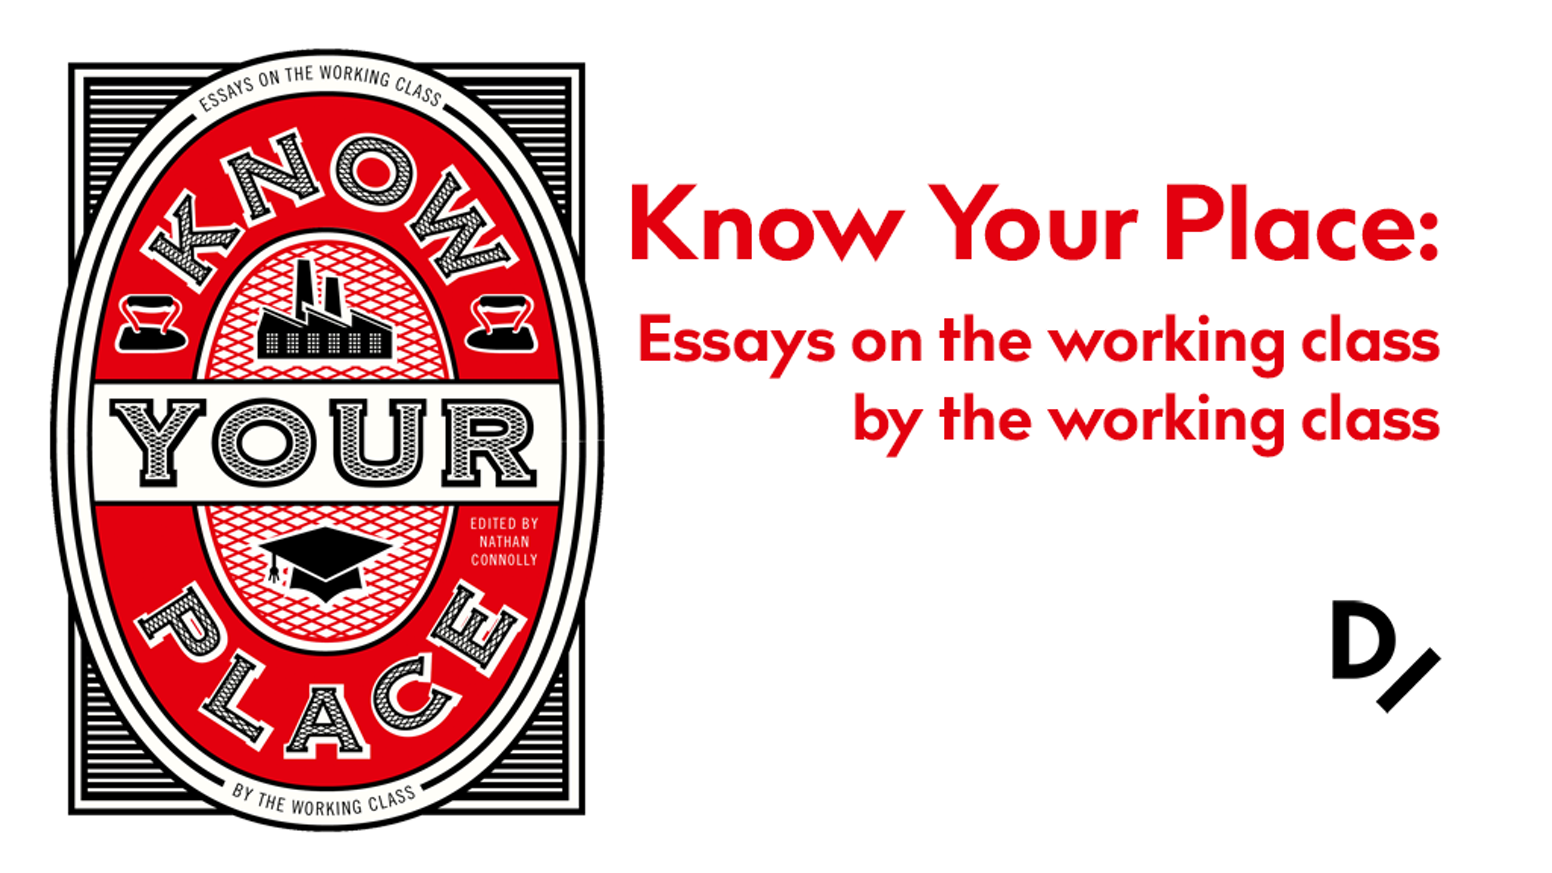 Know Your Place is a book of essays on the working class, written by the working class.